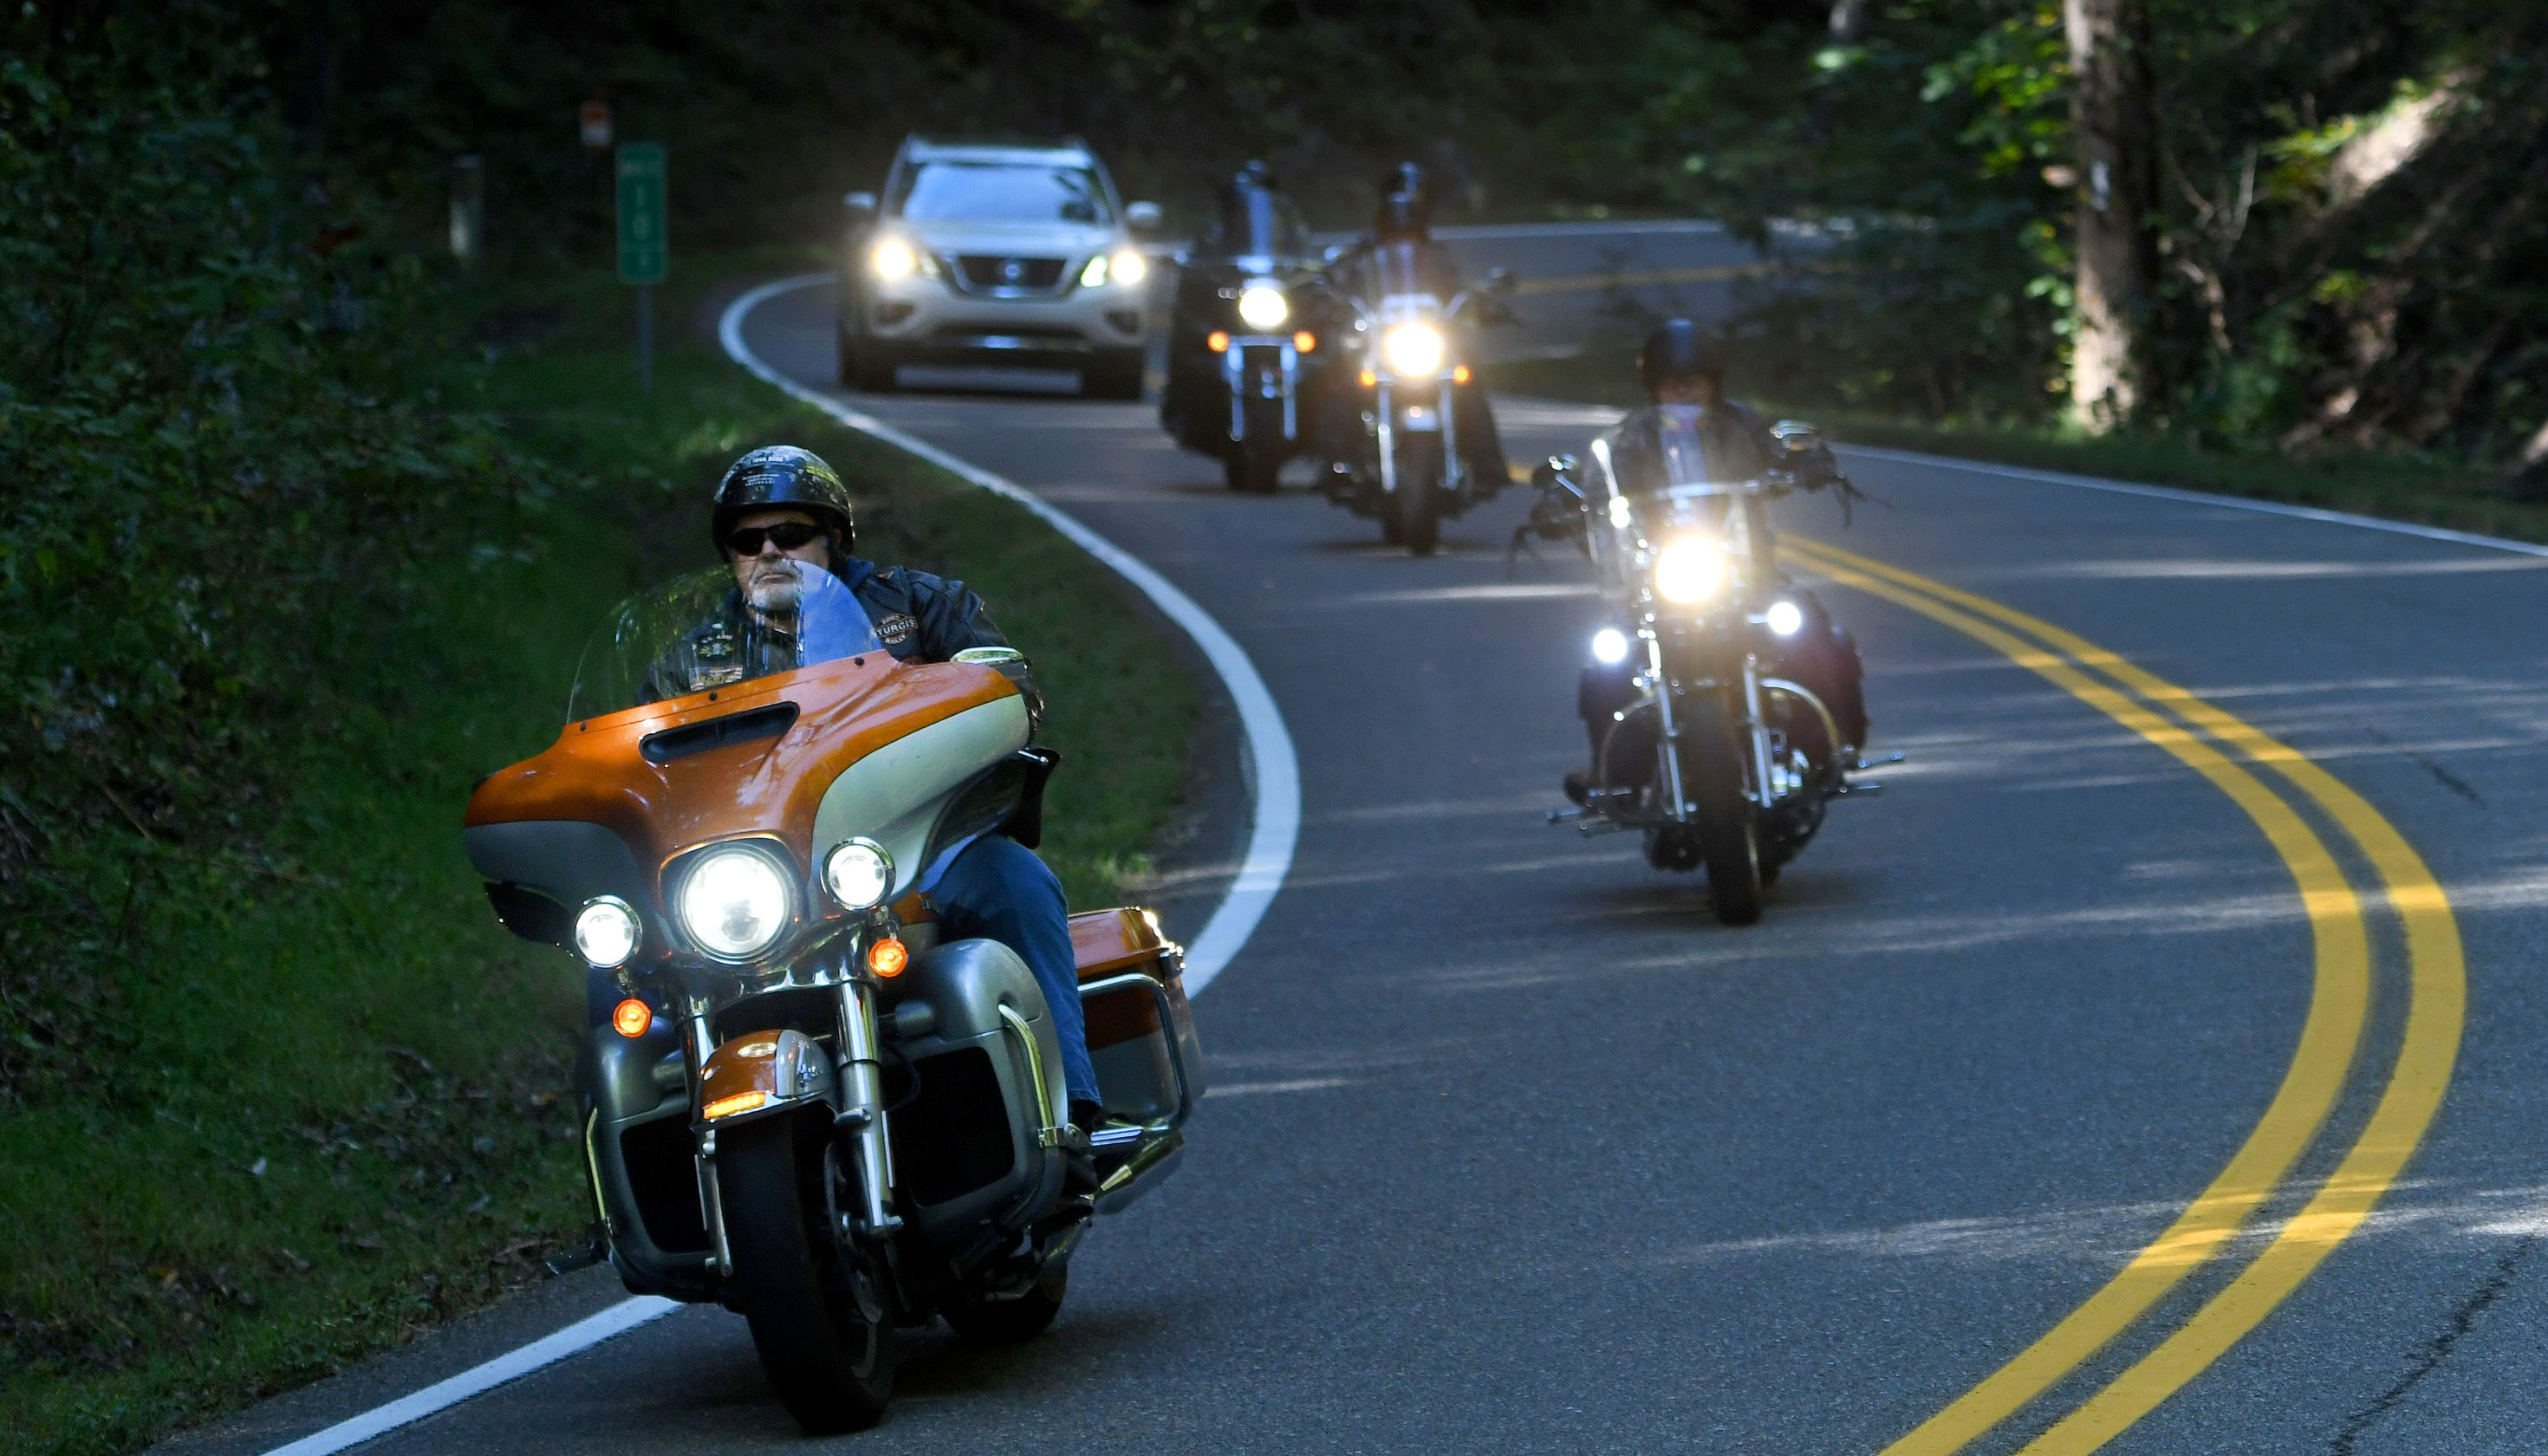 Motorcyclist injured in Memorial Day crash on 'The Dragon' on